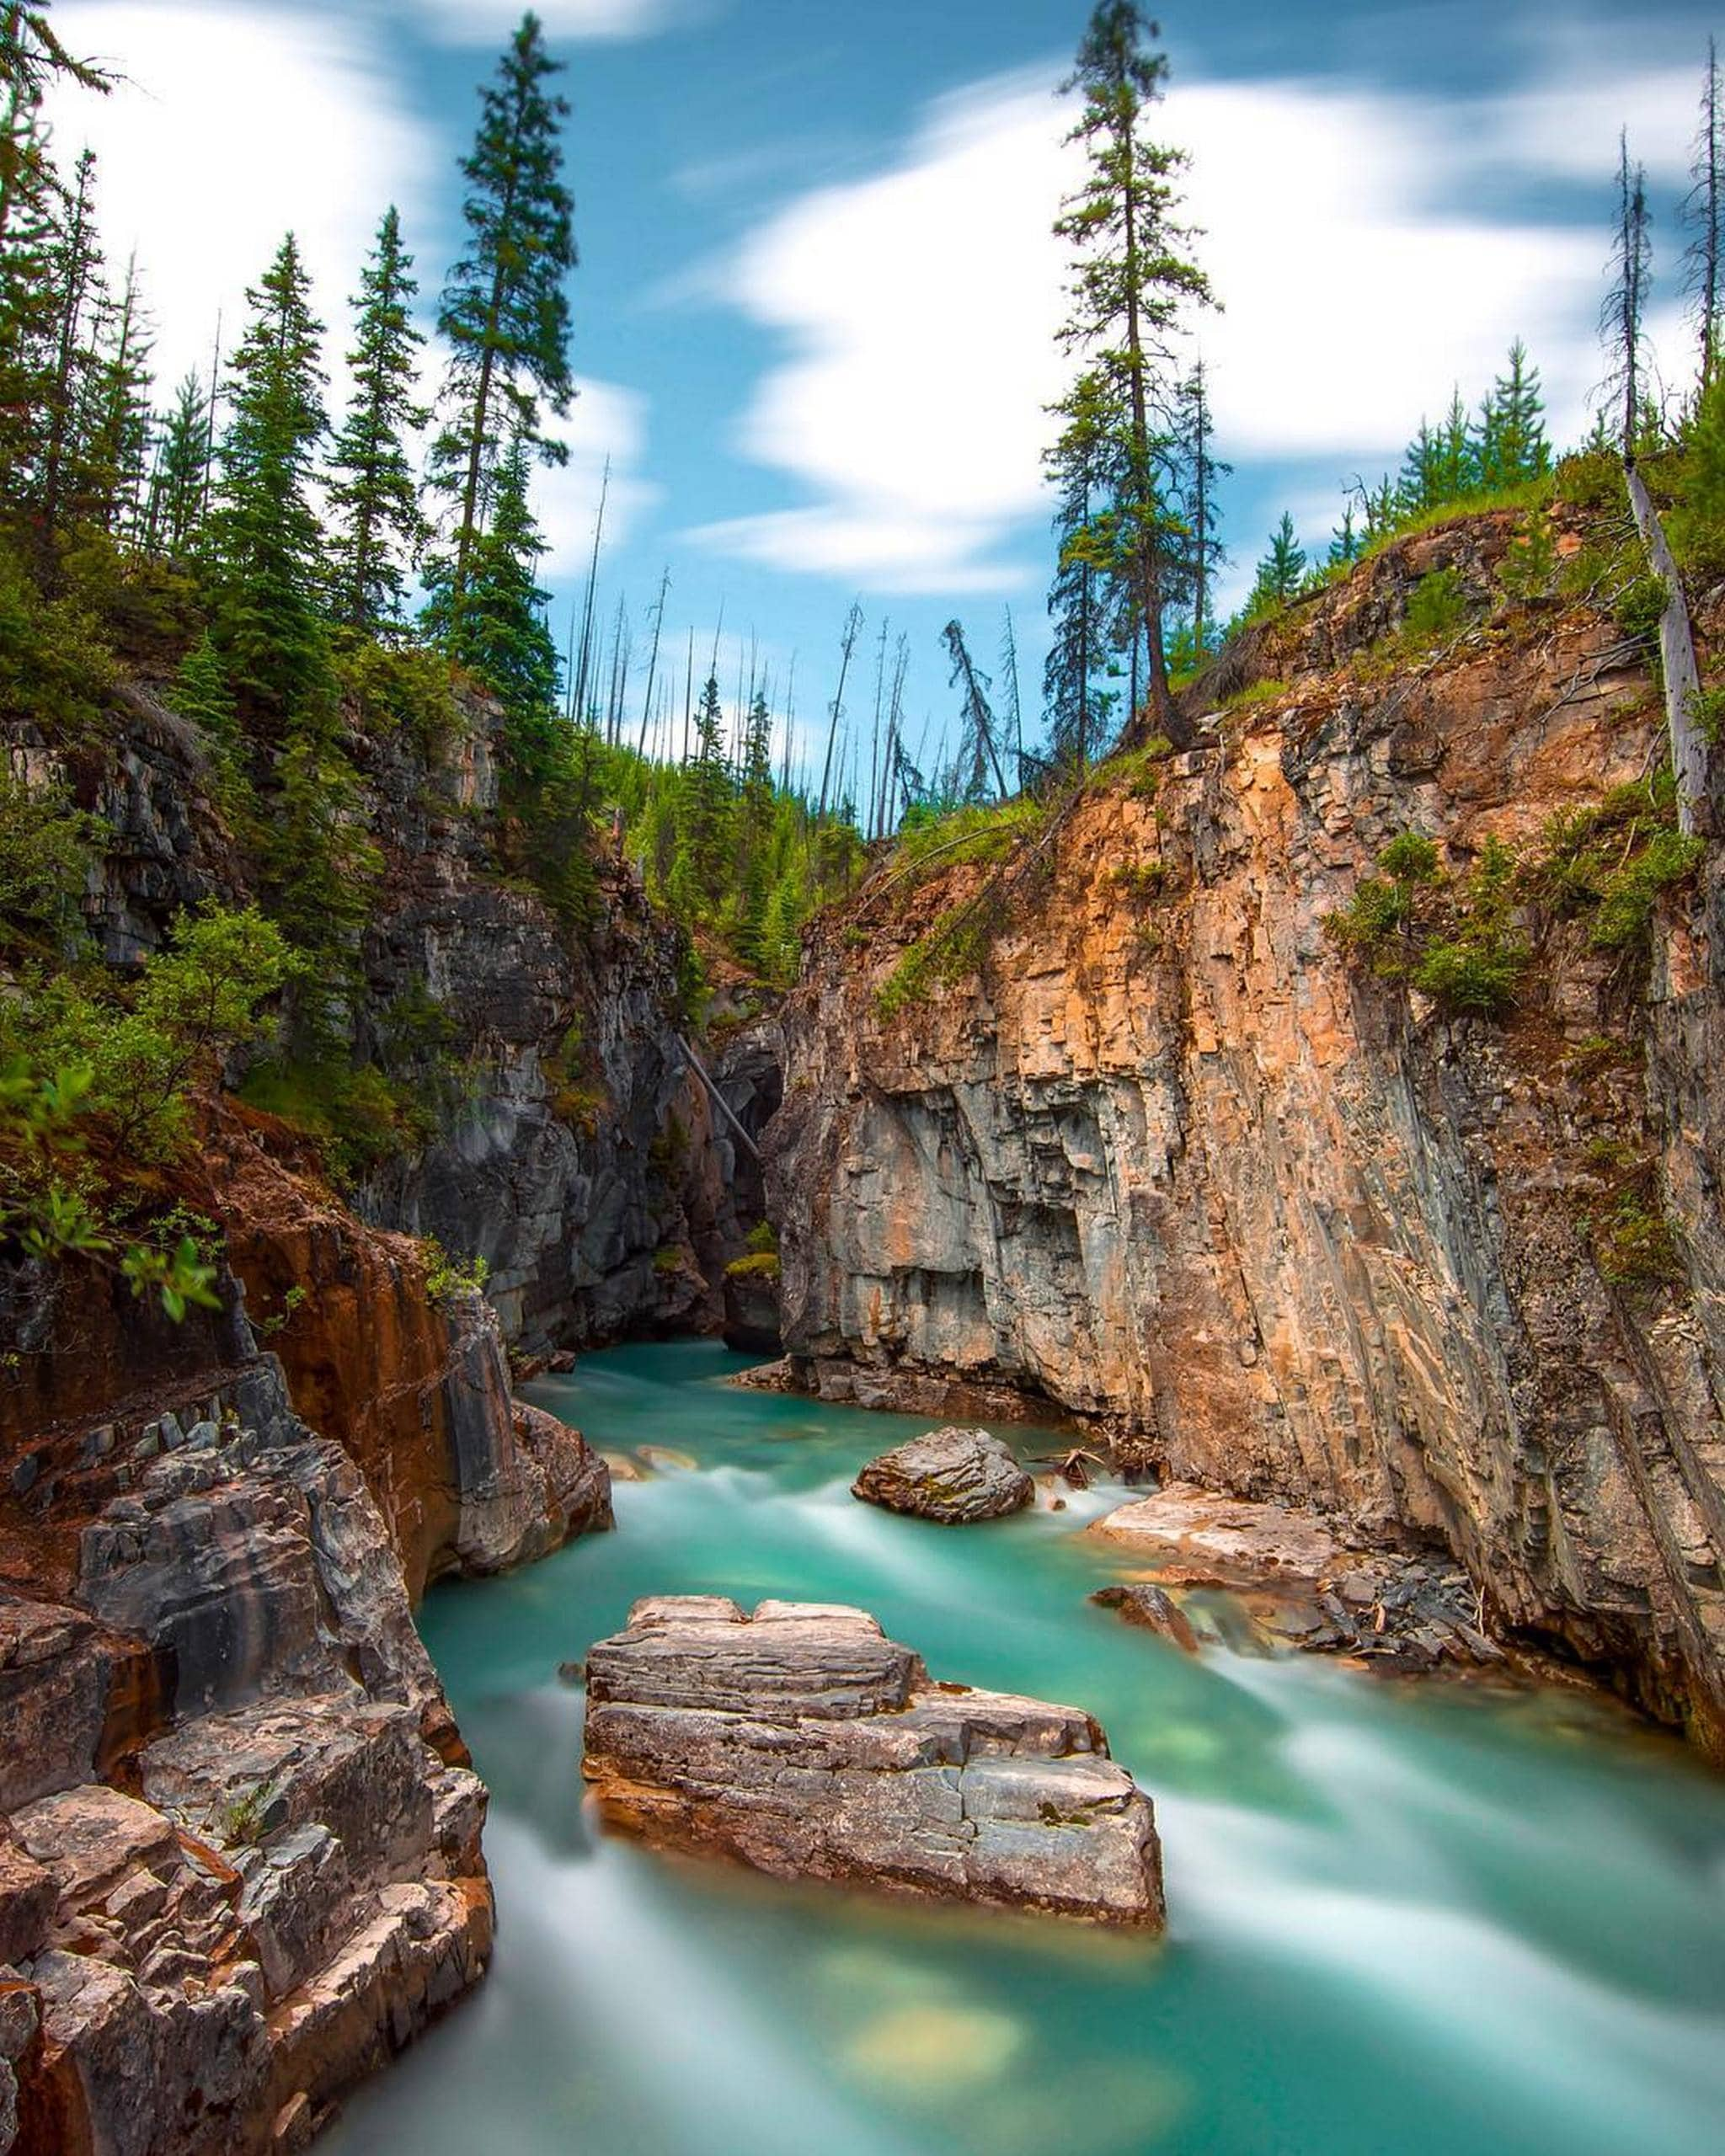 British Columbia Kootenay National Park One Day Tour [Deep Tour of The Continental Divide + Marble Canyon + Radium Hot Springs]